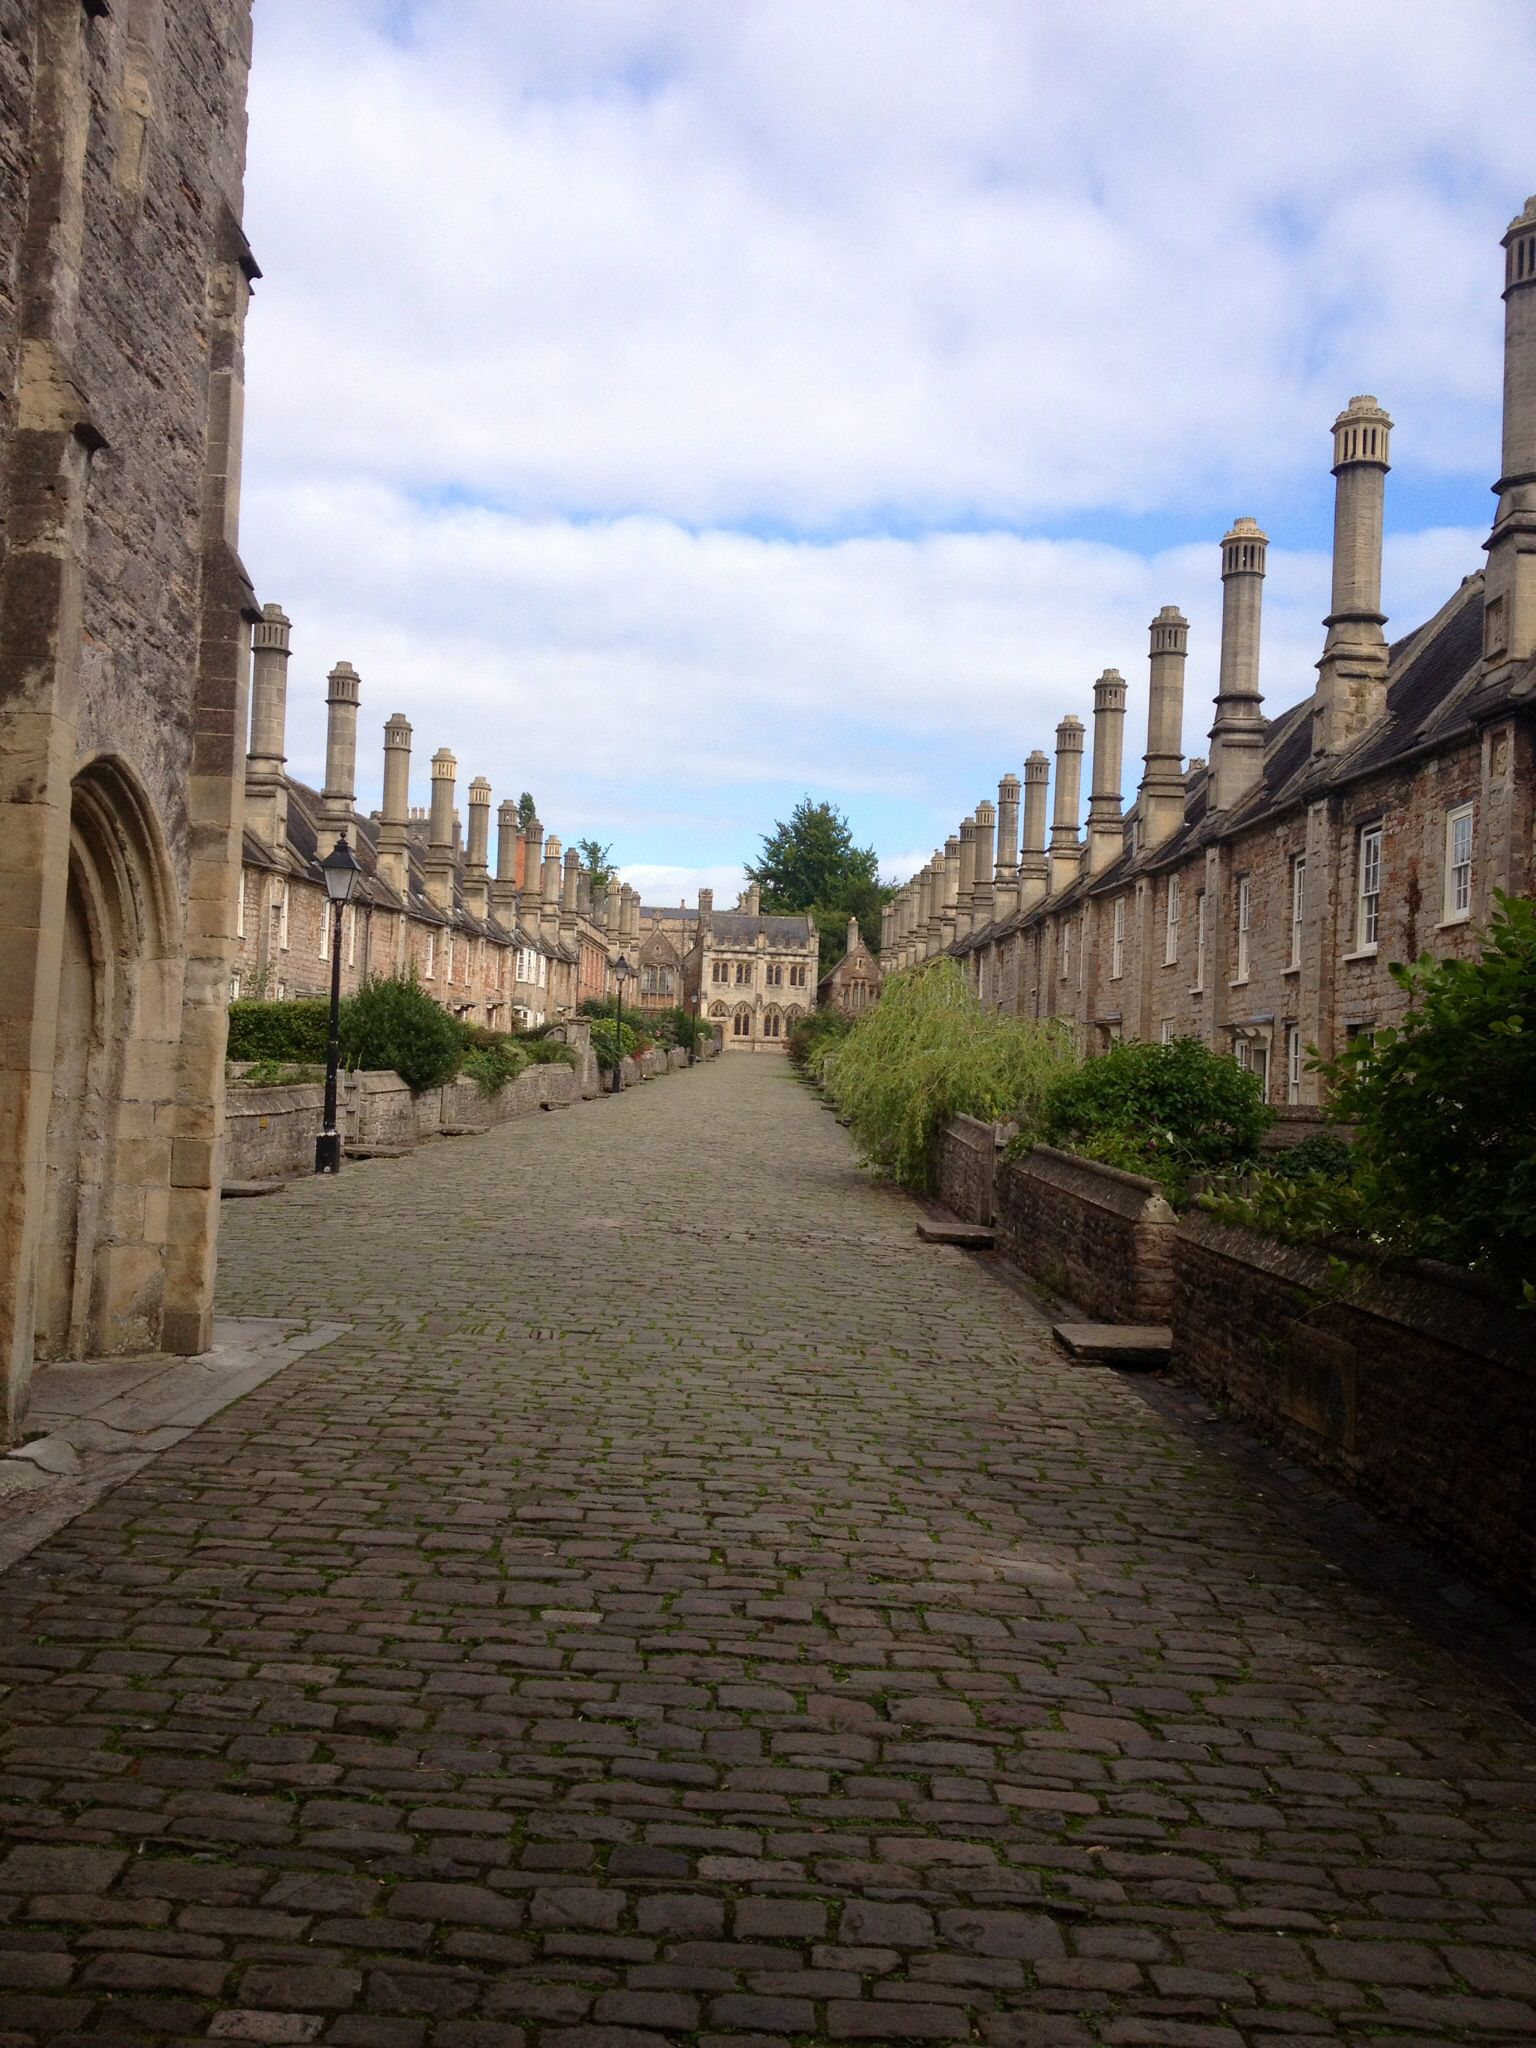 Wells Somerset UK Cobbled Street Built In The 1300s Very Near Cathedral